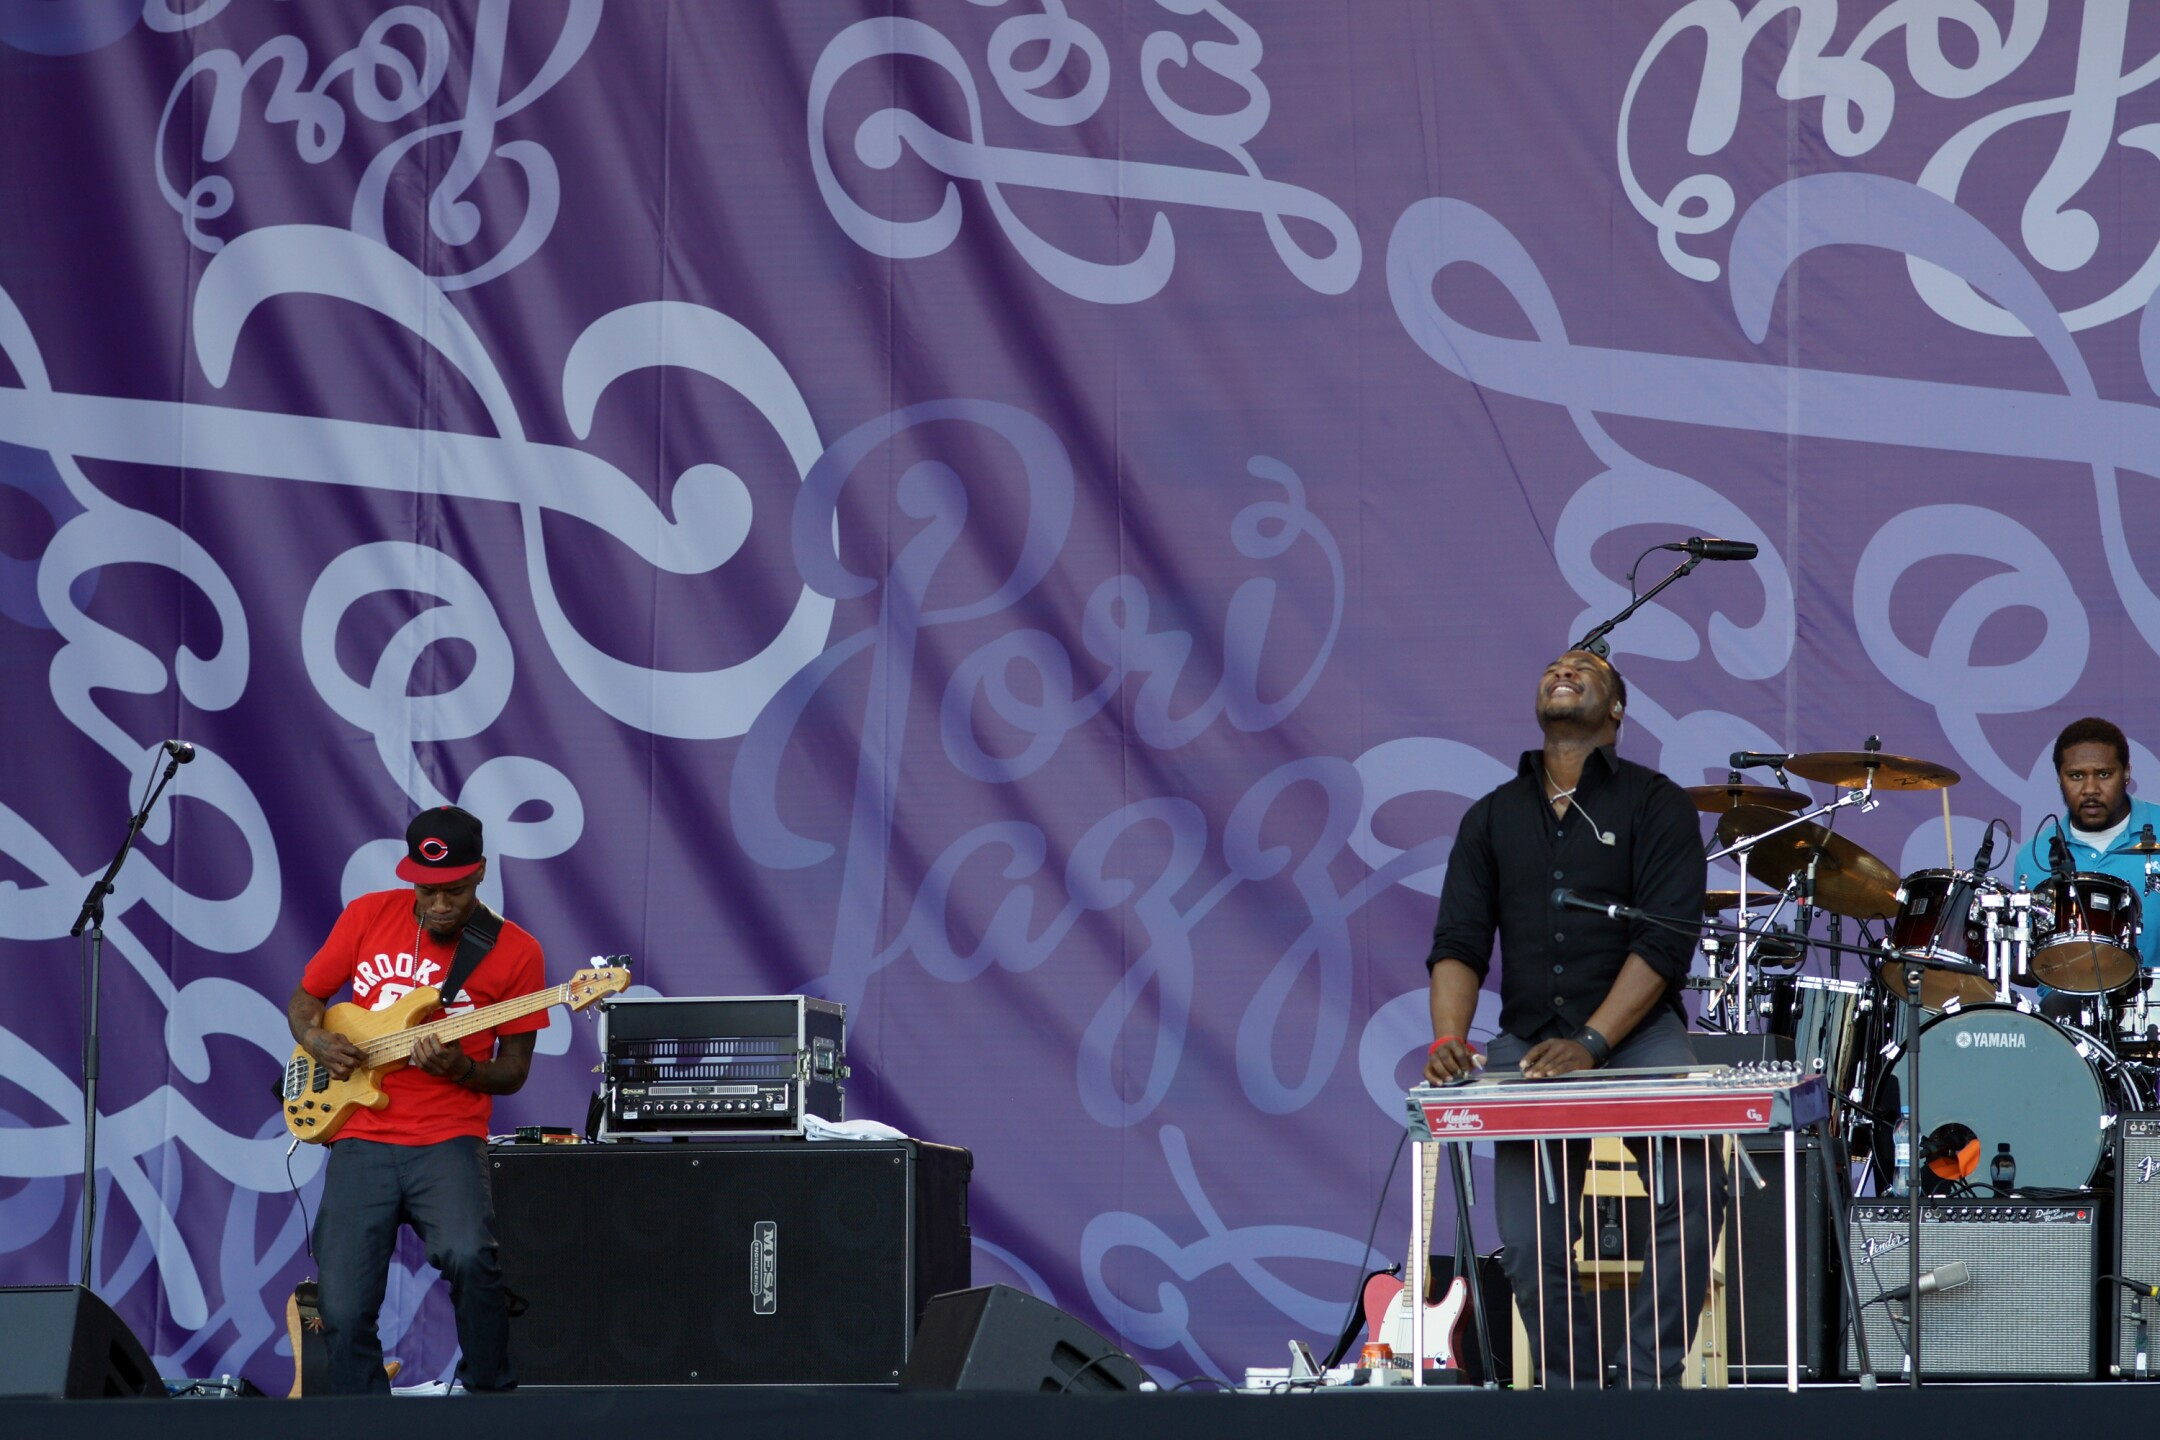 robert randolph and the family band google.jpg